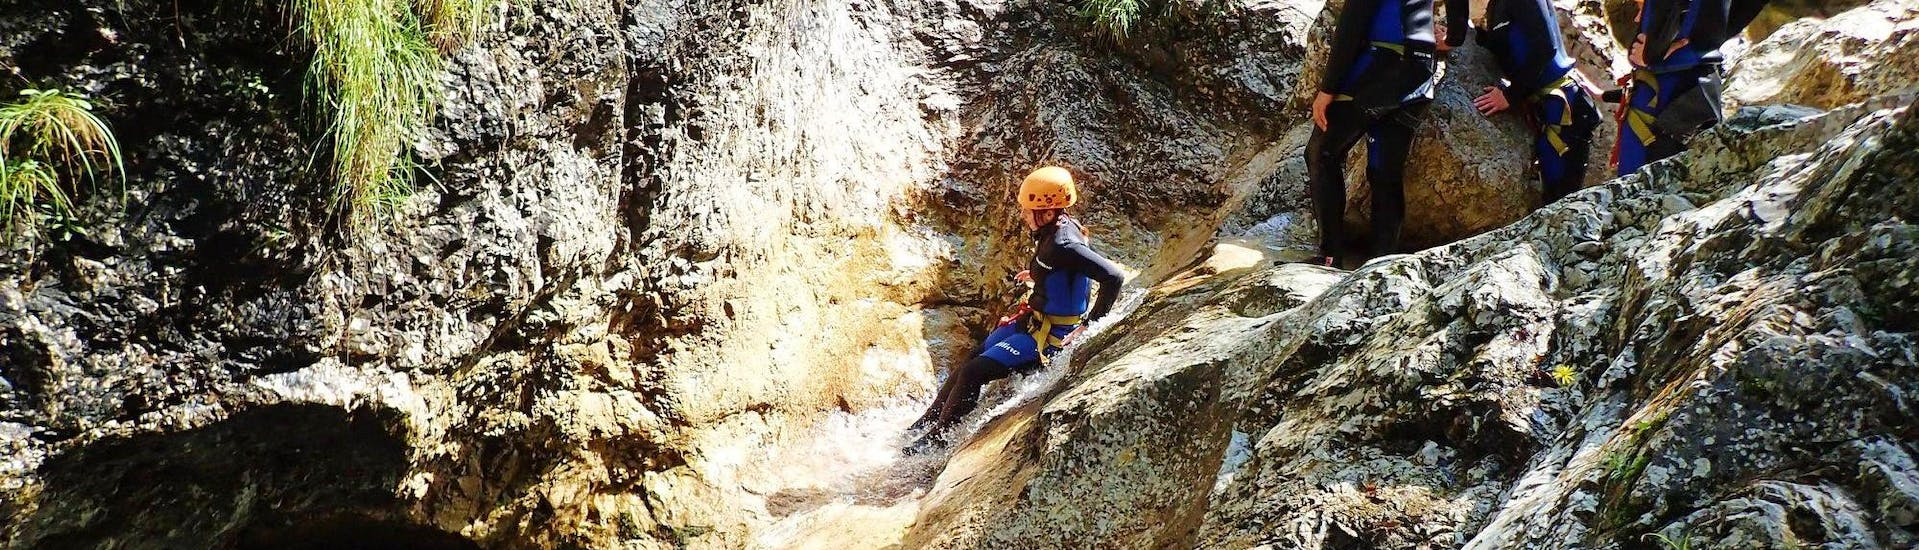 Canyoning in the Sušec Gorge